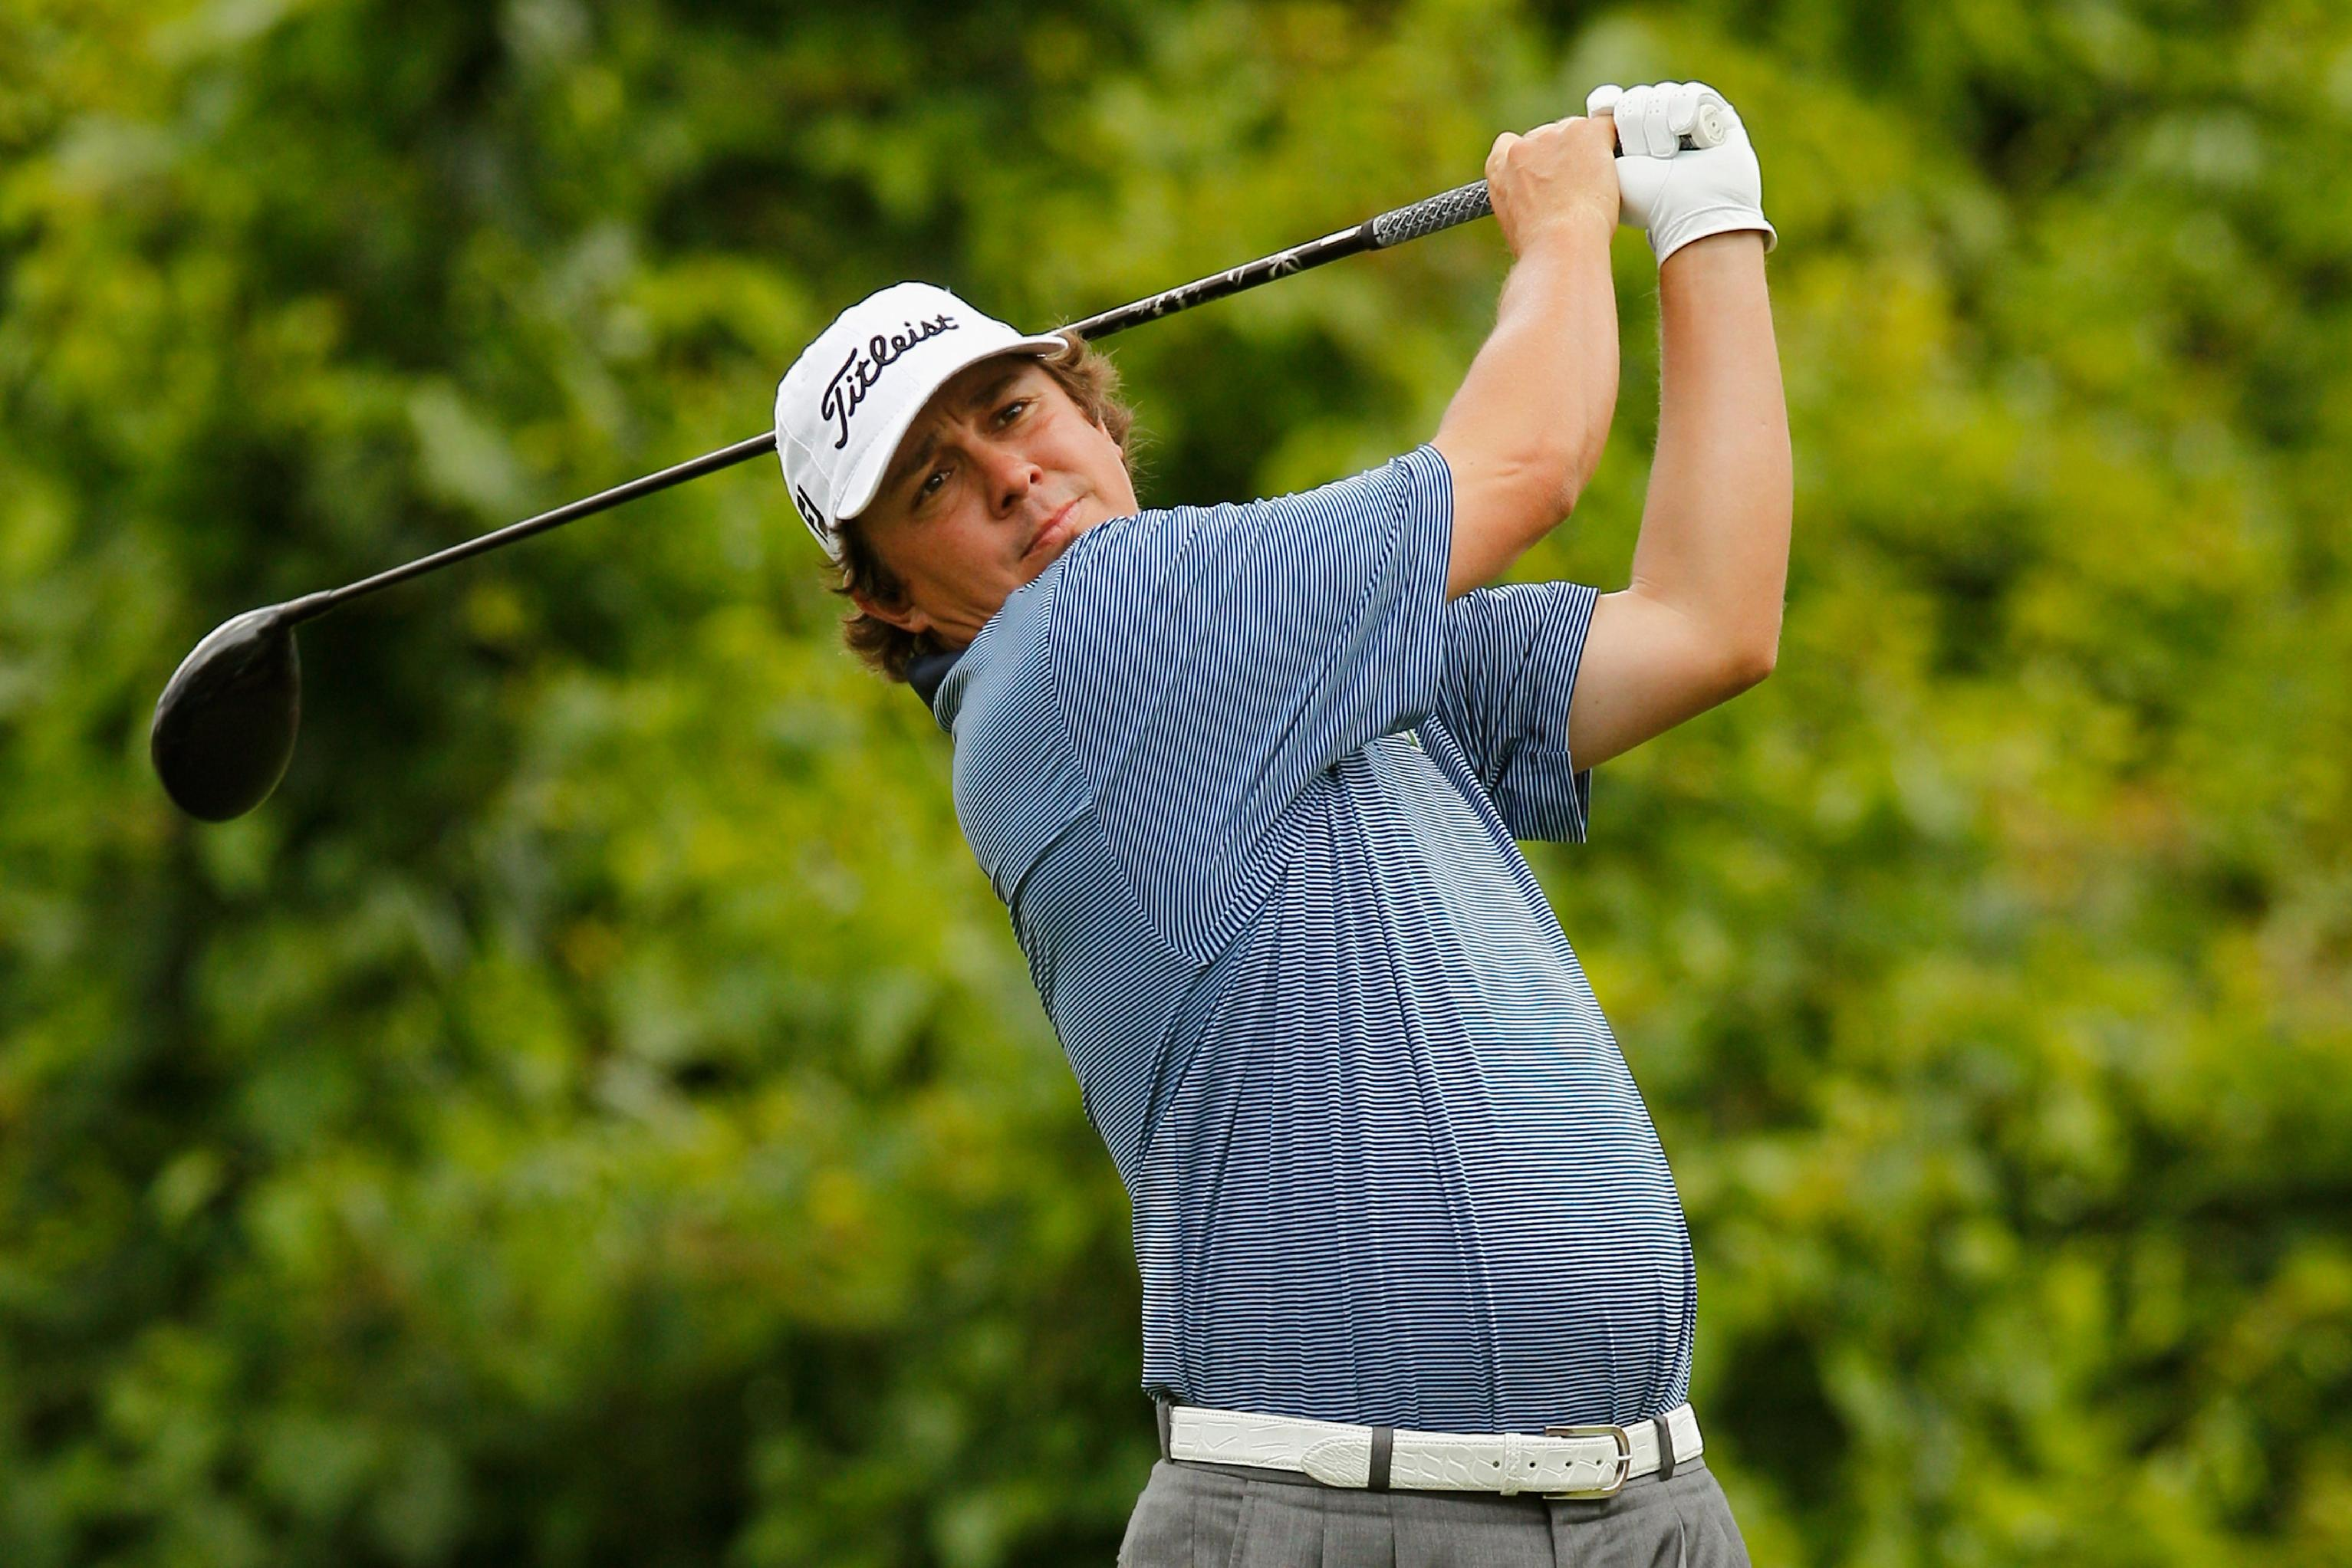 Jason Dufner earned his first PGA Tour victory at the Zurich Classic. (AFP)